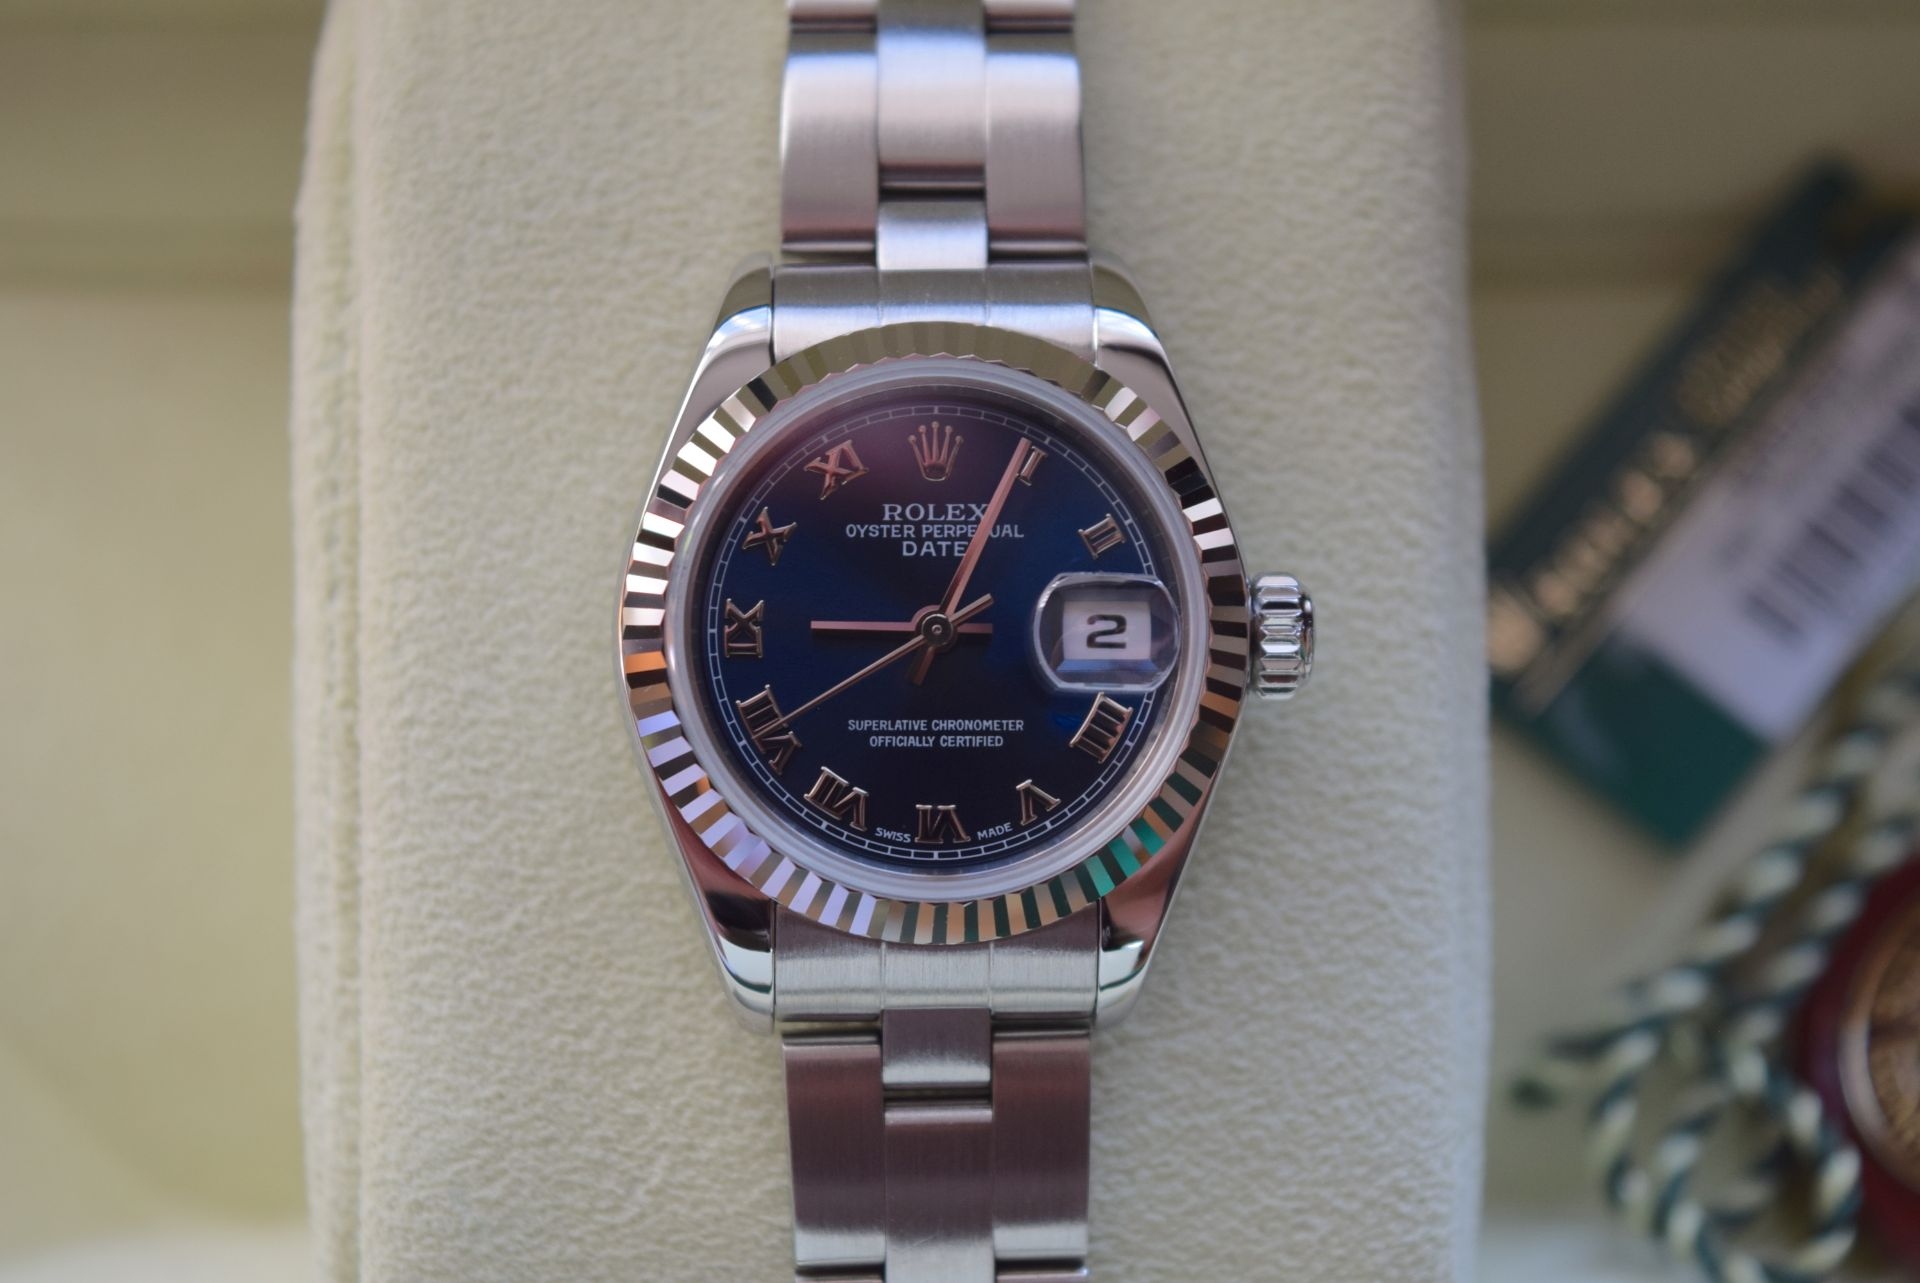 *FULL SET* ROLEX DATEJUST (LADIES) STEEL & 18CT WHITE GOLD - NAVY BLUE 'ROMAN NUMERAL' DIAL - Image 7 of 19